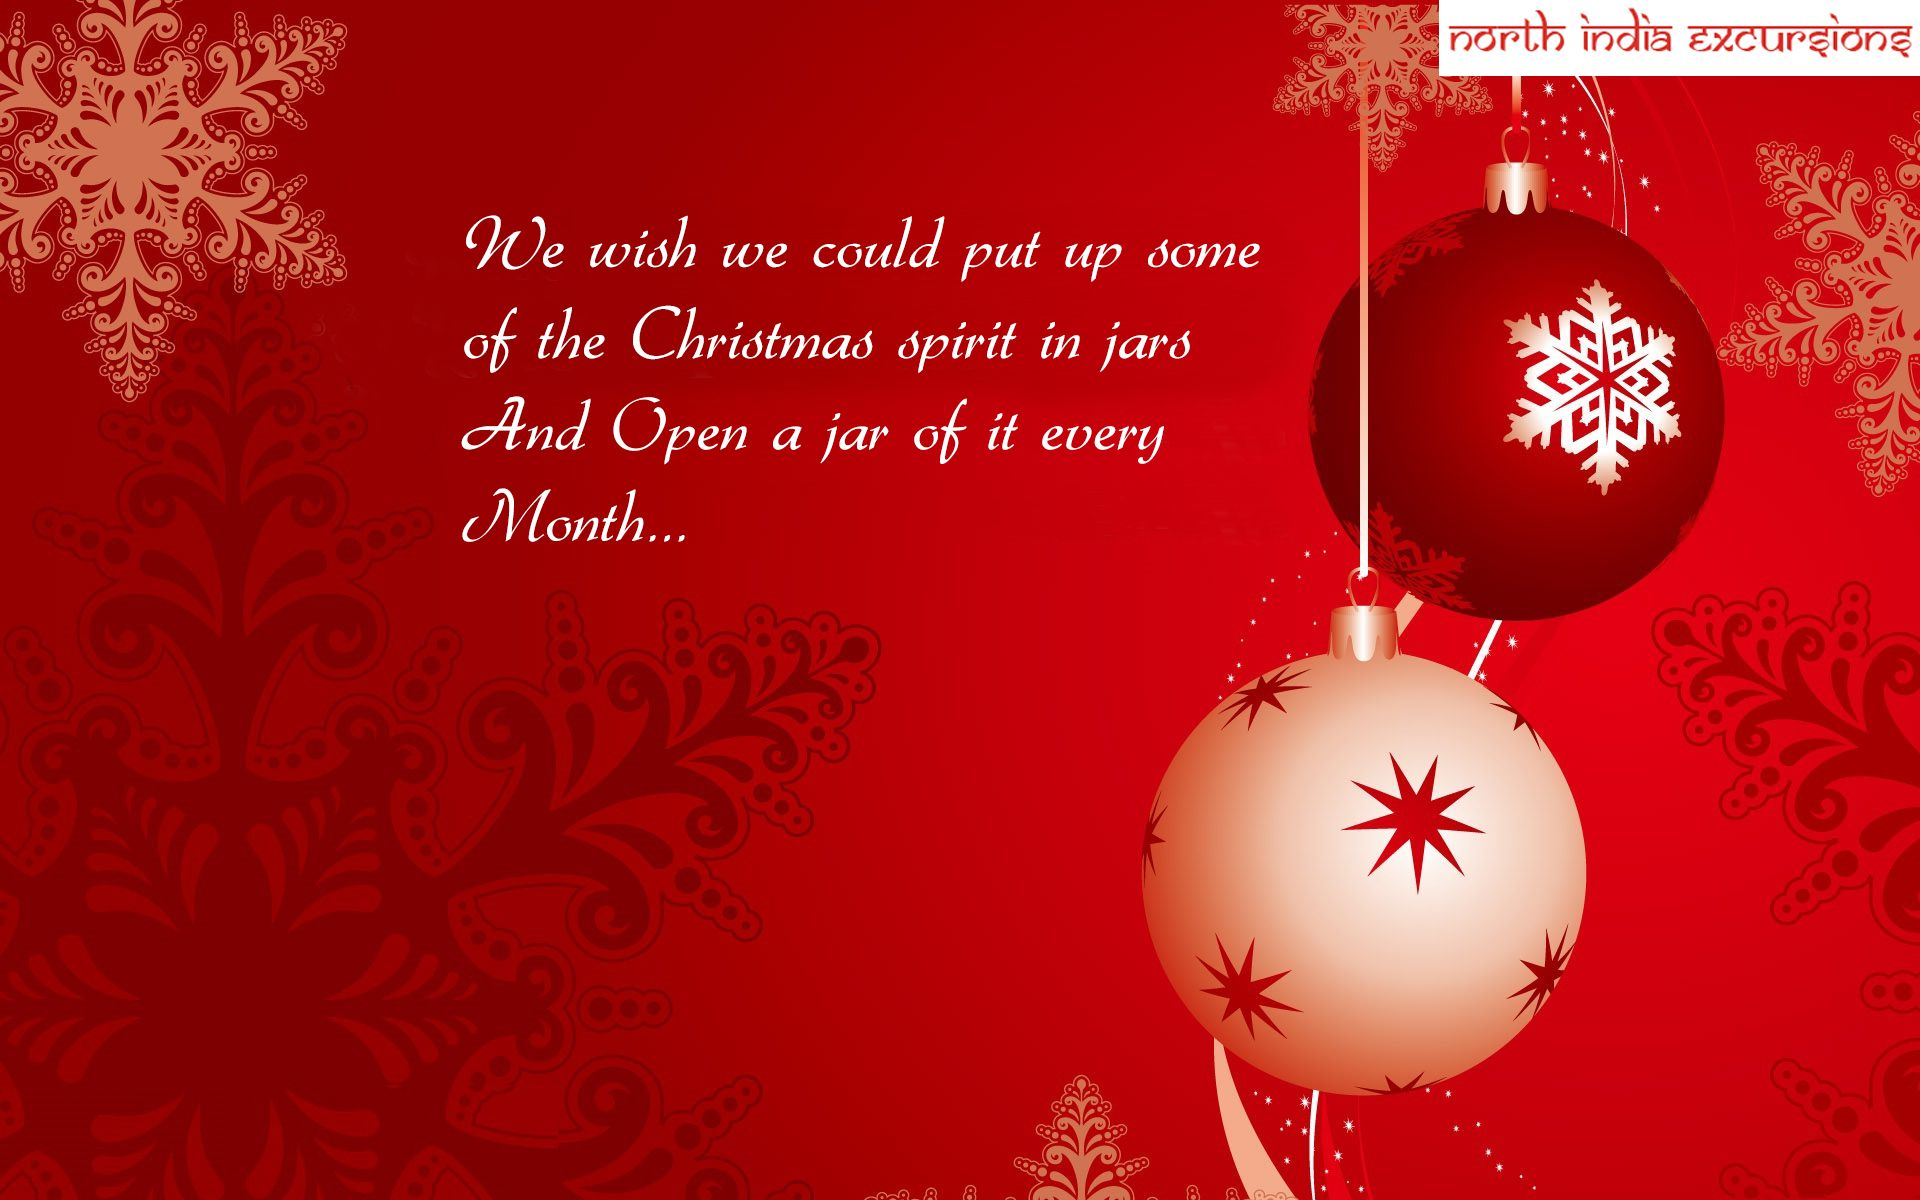 North india excursions sends christmas greeting to all merry north india excursions sends christmas greeting to all merry christmas kristyandbryce Image collections